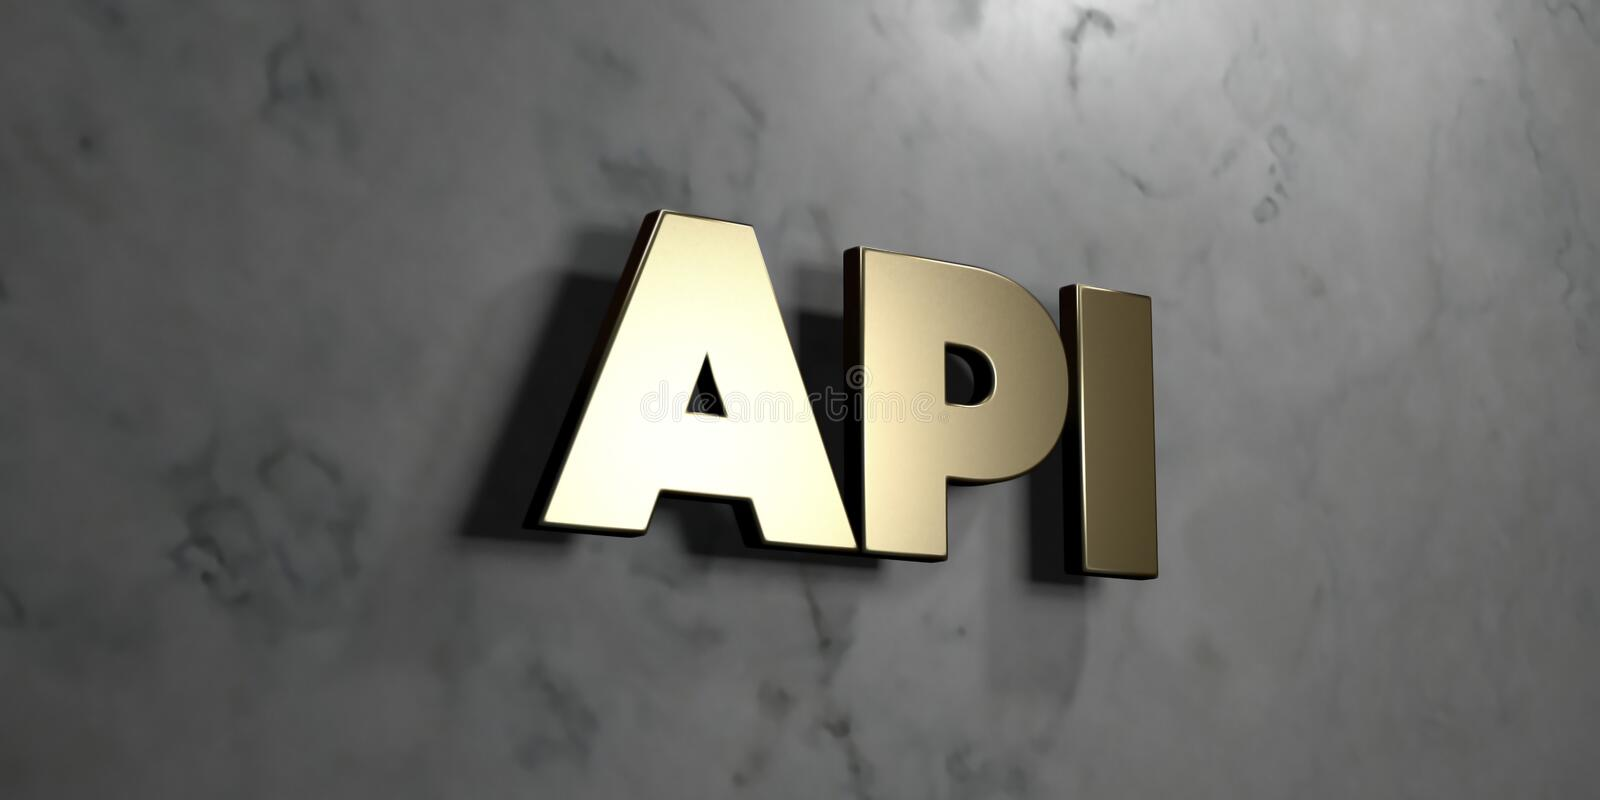 Api - Gold Sign Mounted On Glossy Marble Wall - 3D Rendered